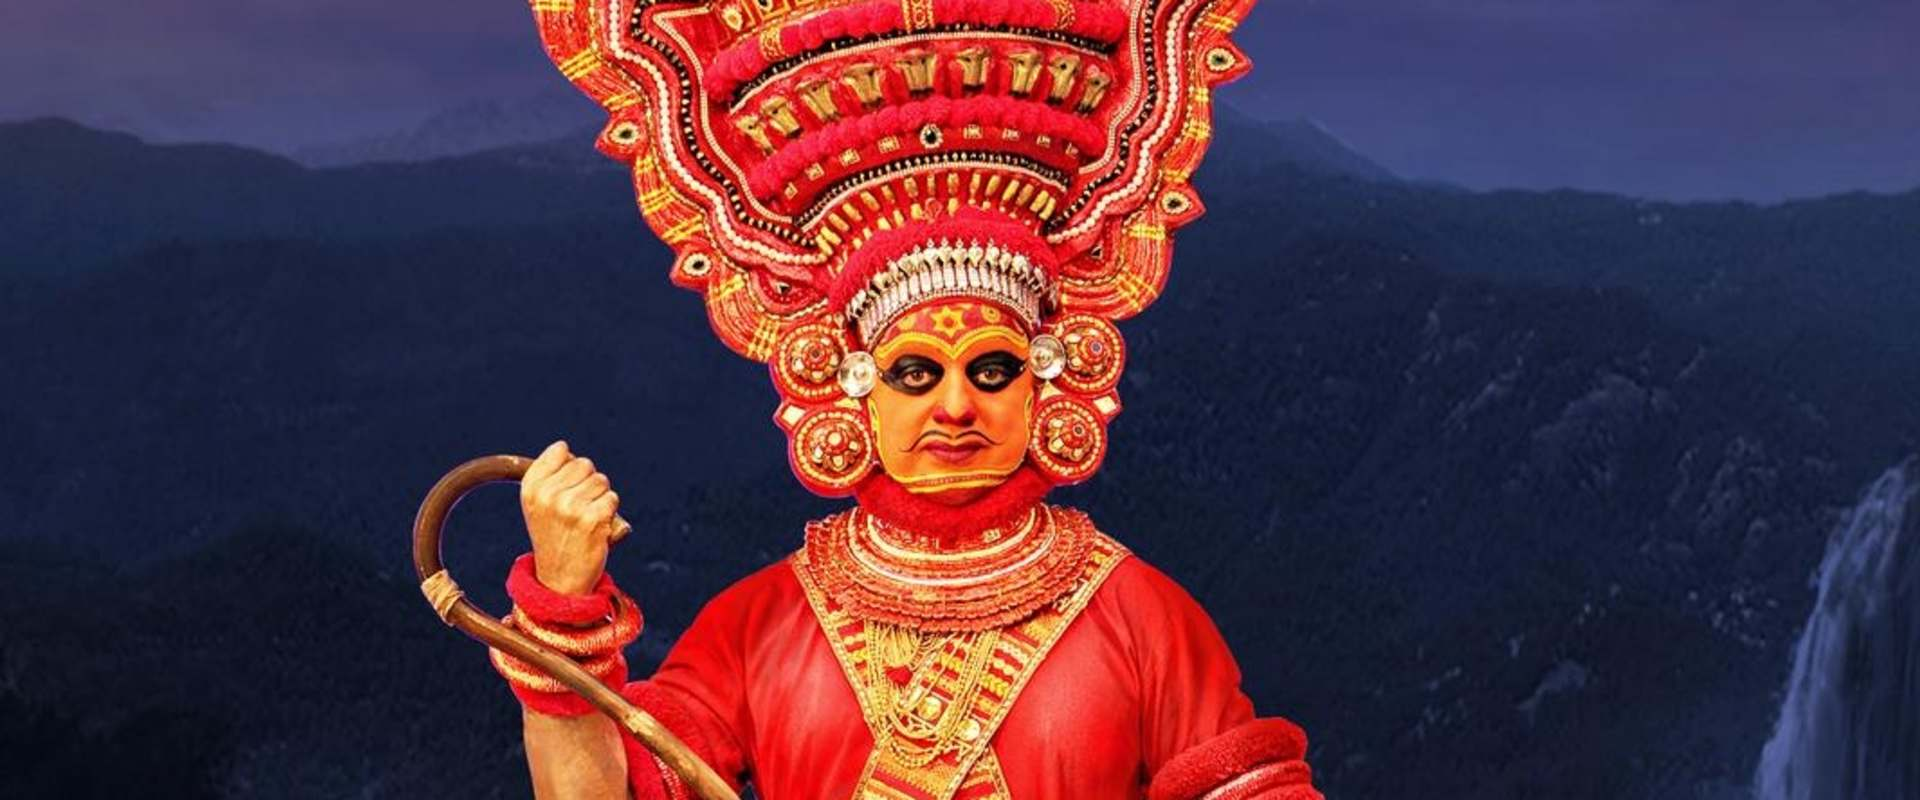 Uttama Villain background 1